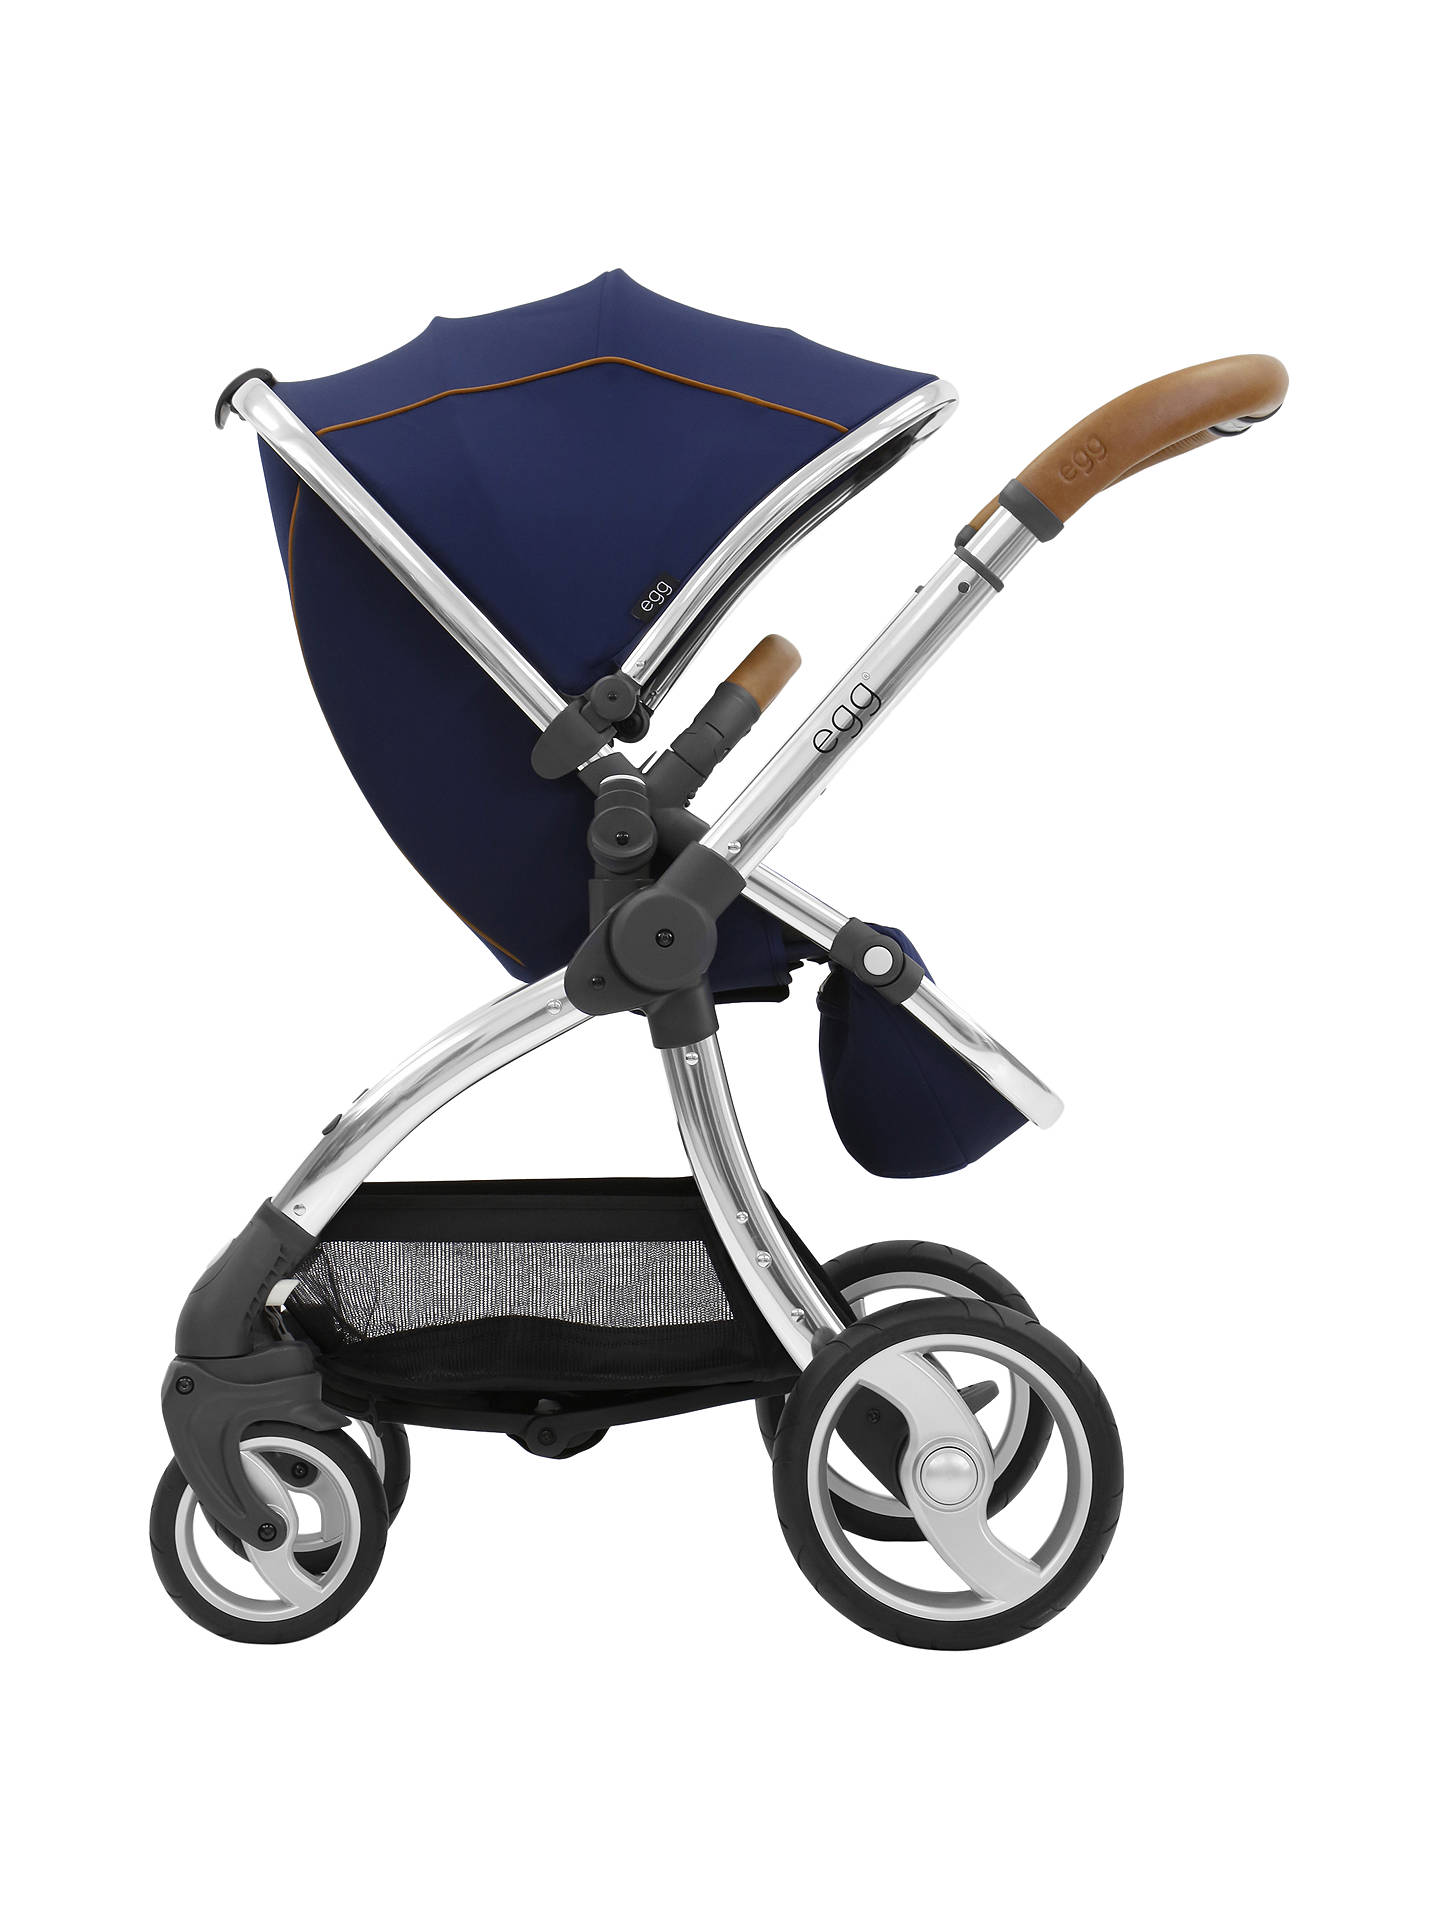 Buyegg Stroller Base and Seat with Fleece Liner, Regal Navy Online at johnlewis.com